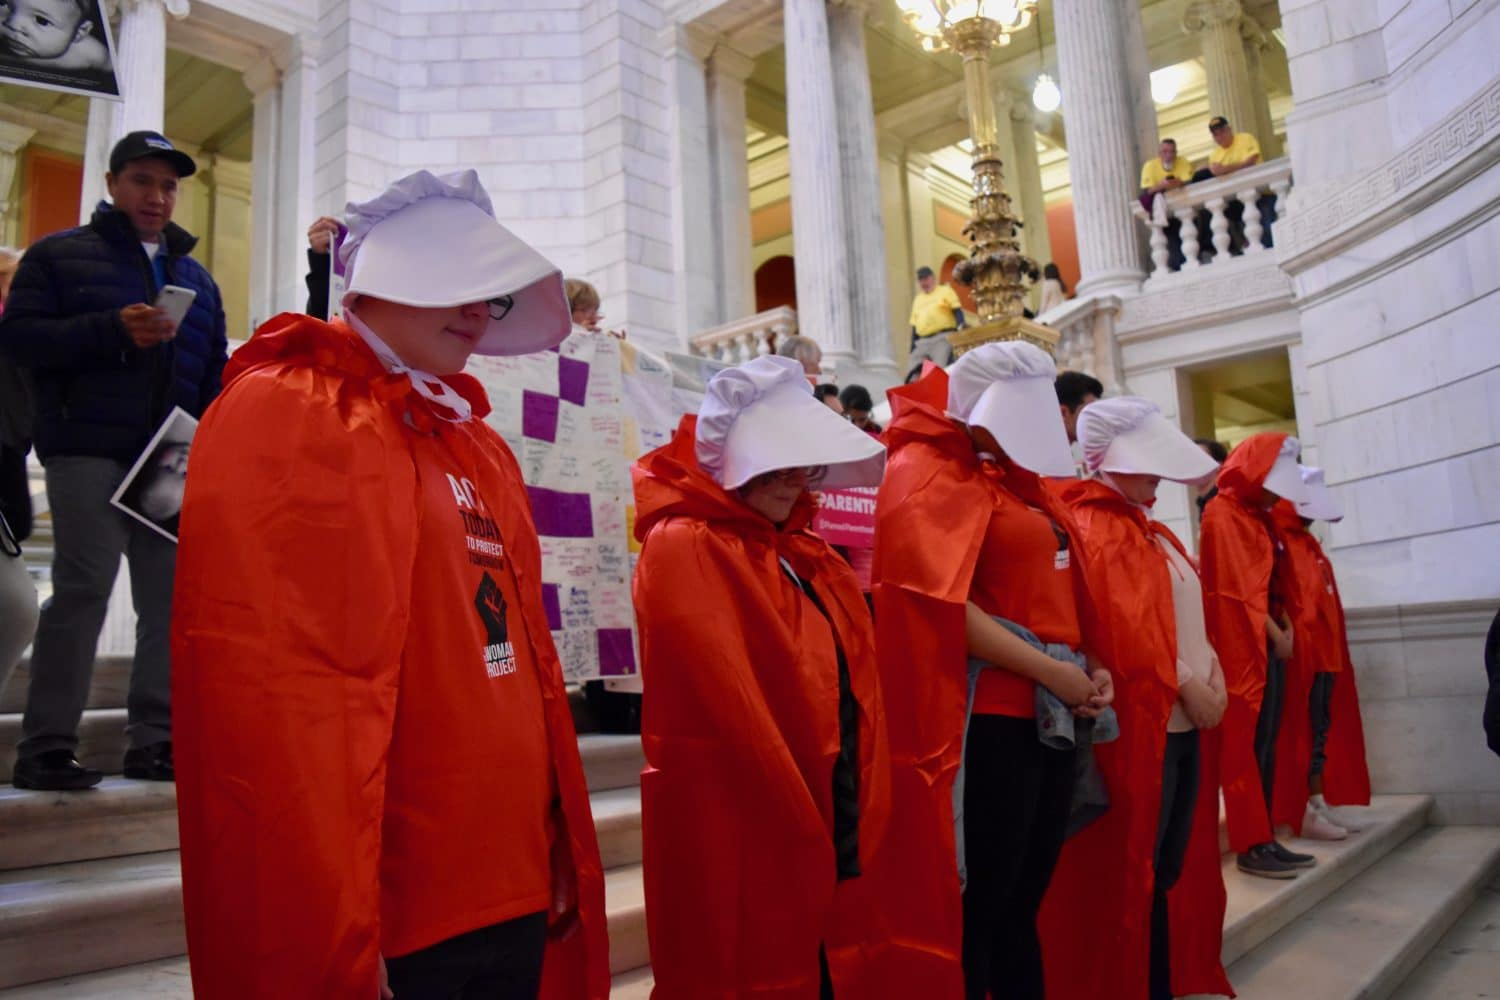 Photo for Reproductive Health Care Act gets its hearing at a busy State House